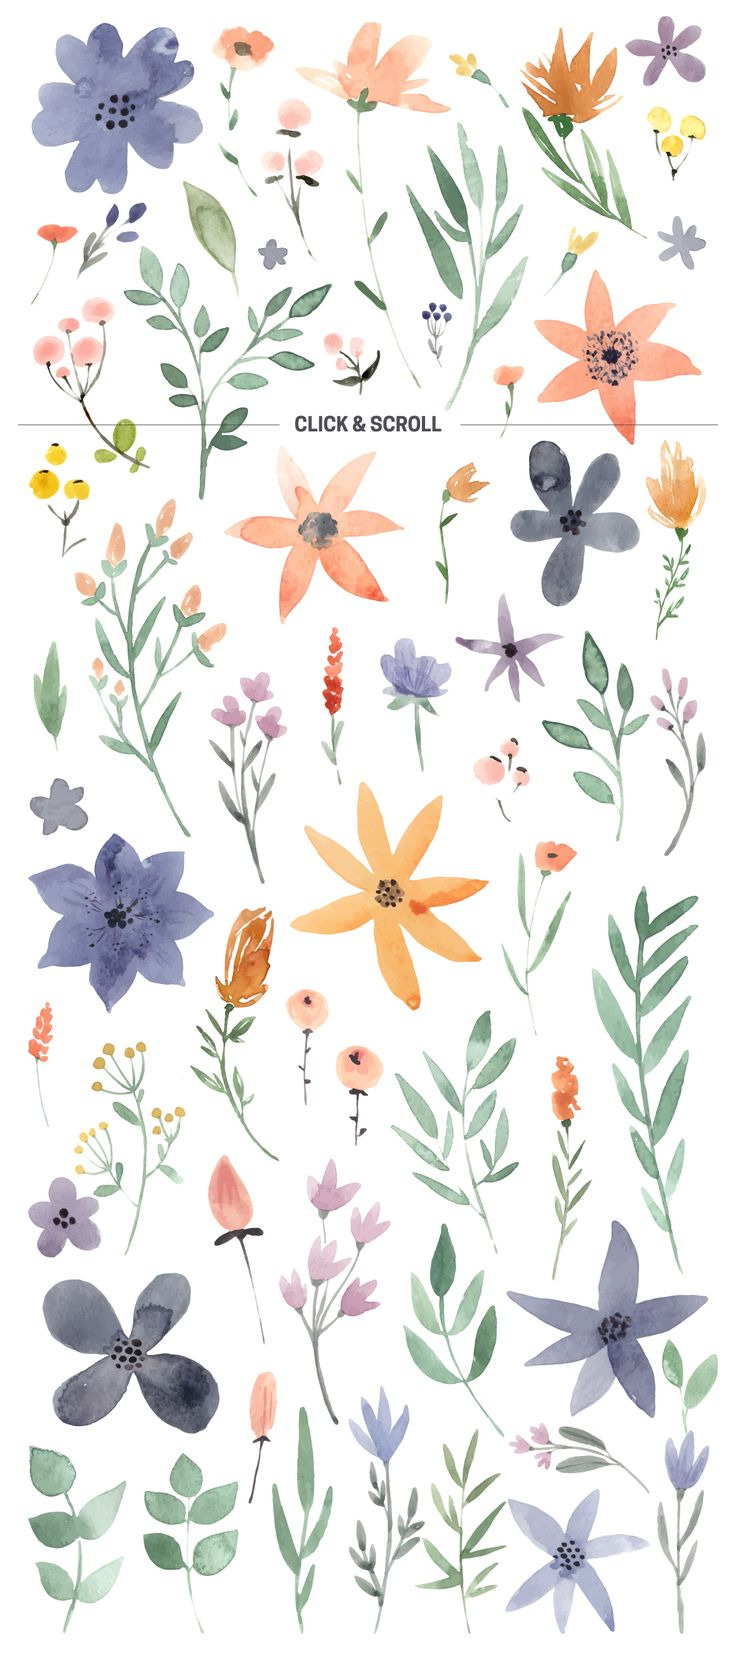 Watercolor flowers png clipart illustrations on creative market - 123 Diy Watercolor Flowers Eps Png By Favete Art On Creative Market